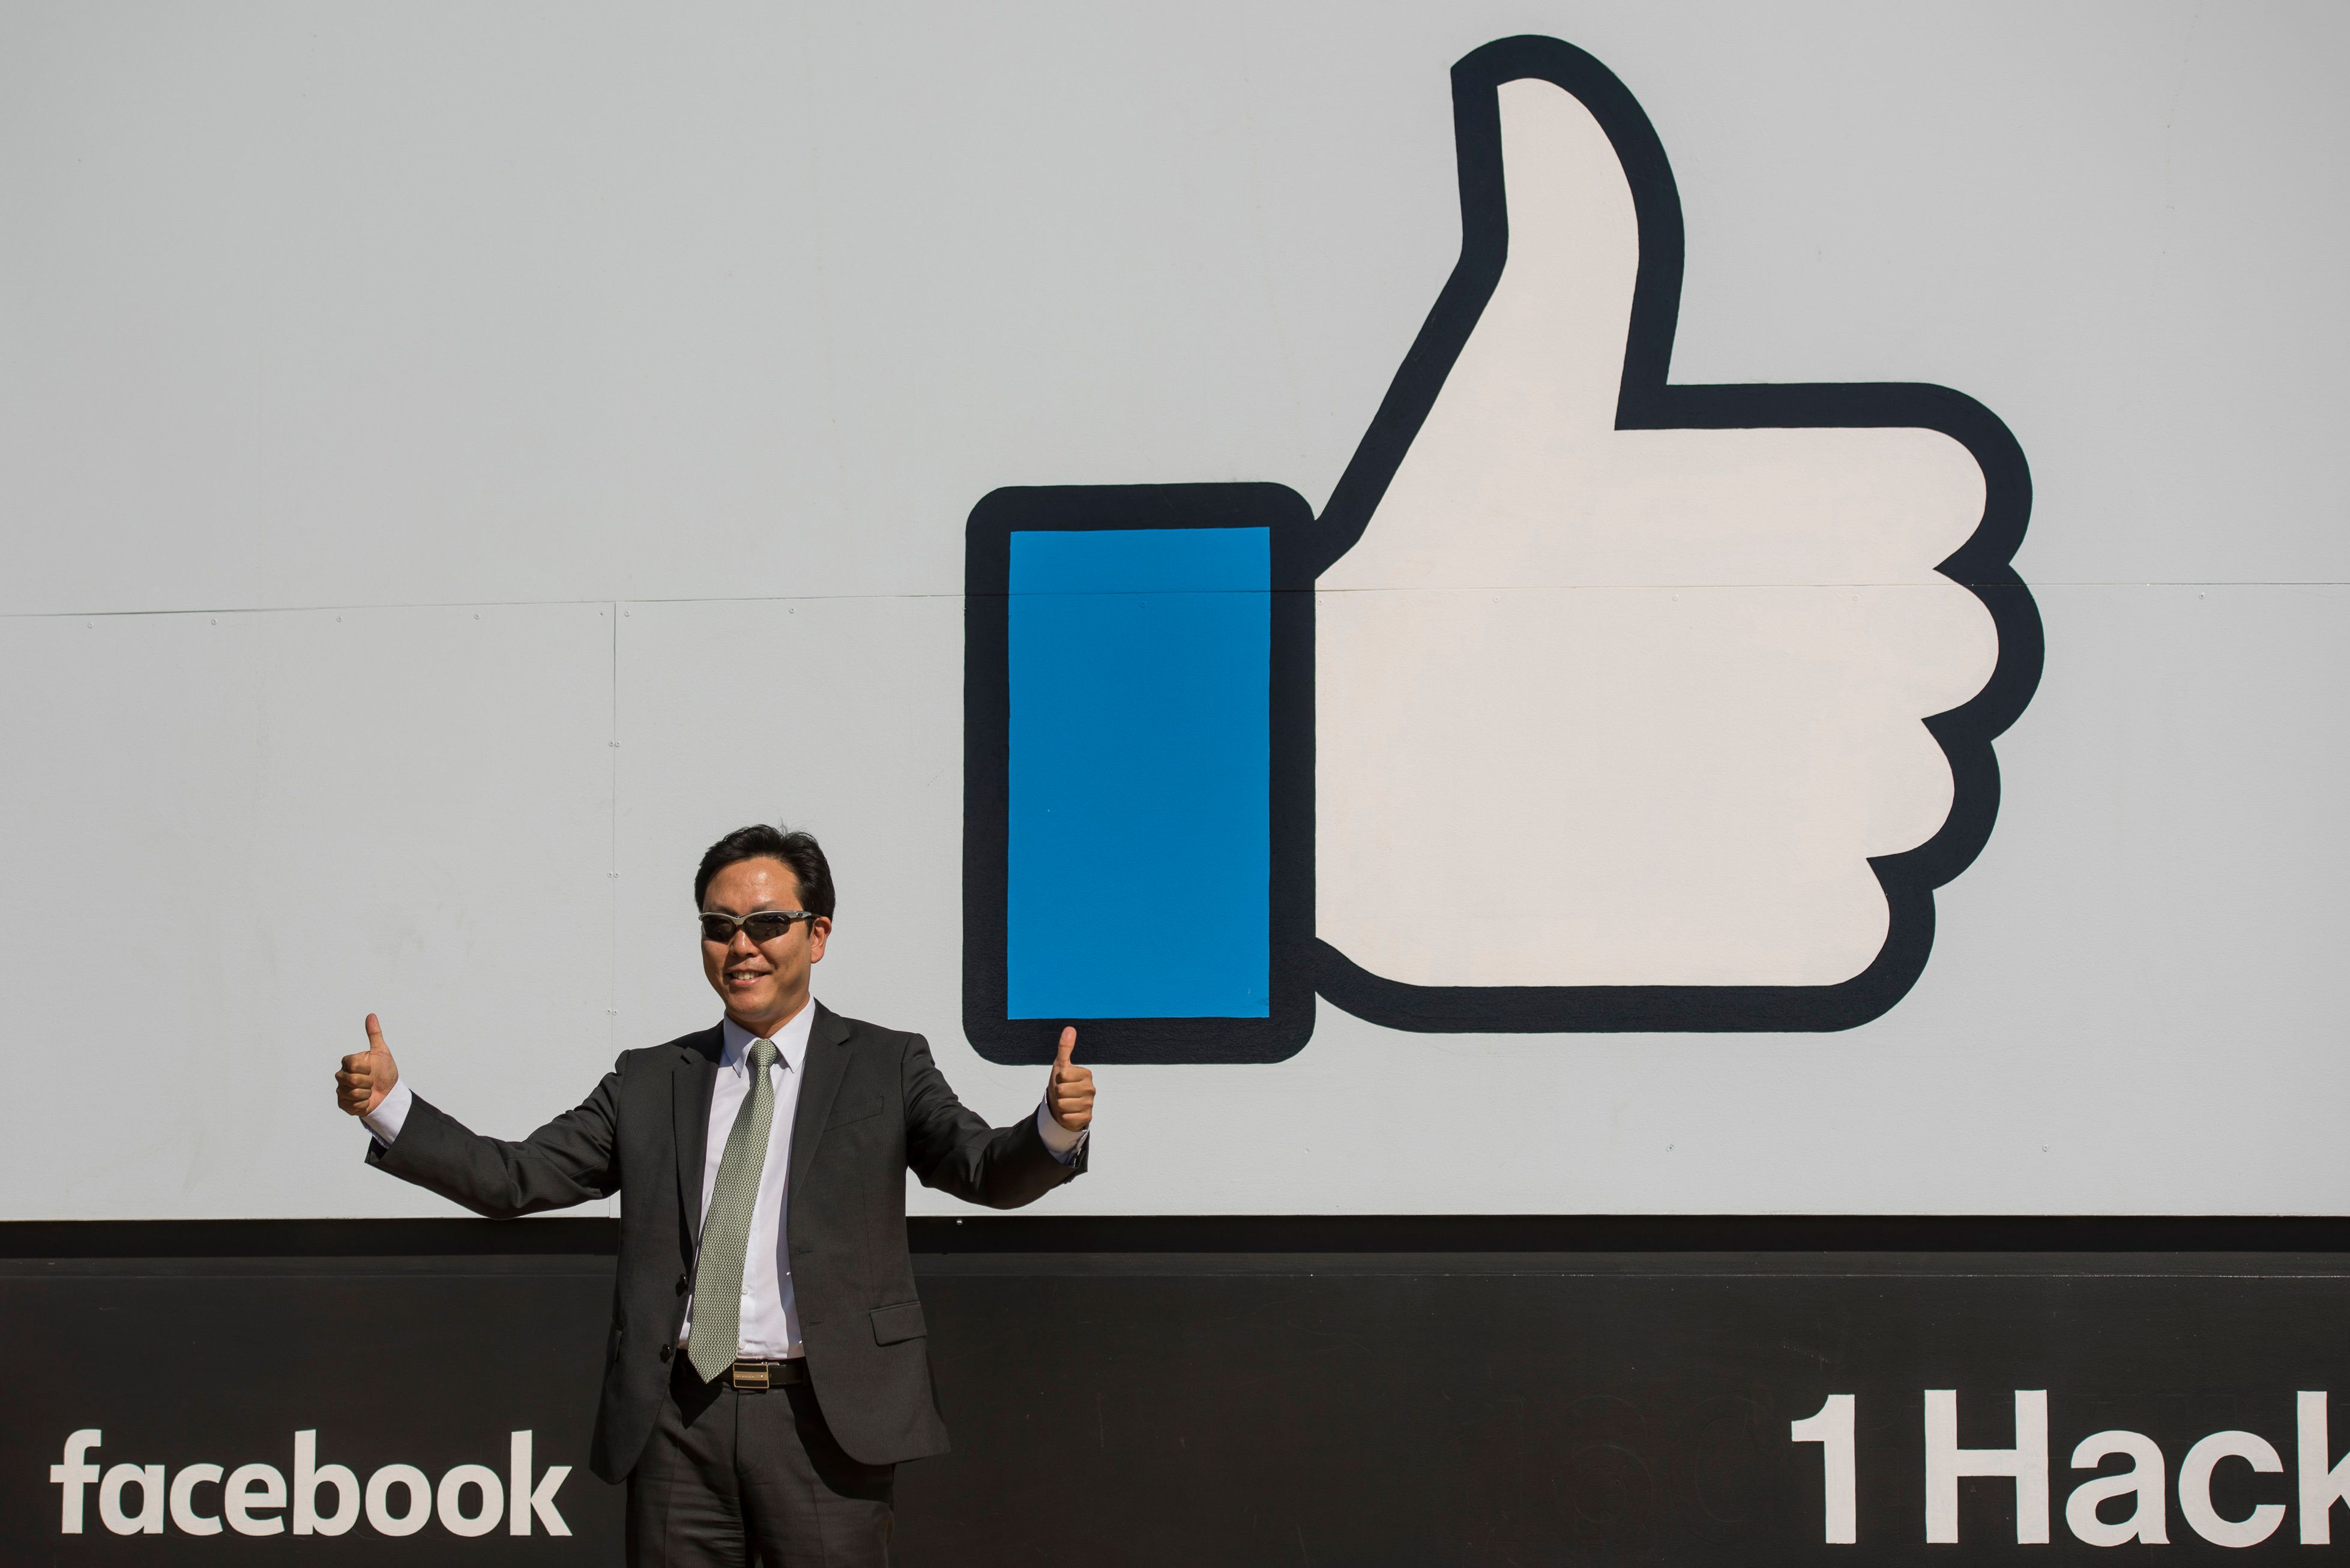 A visitor gestures while standing for a photograph in front of the 'Like' logo displayed at Facebook Inc. headquarters in Menlo Park, California, U.S., on Thursday, Oct. 22, 2015. Facebook is expected to release earnings figures on November 4. Photographer: David Paul Morris/Bloomberg via Getty Images